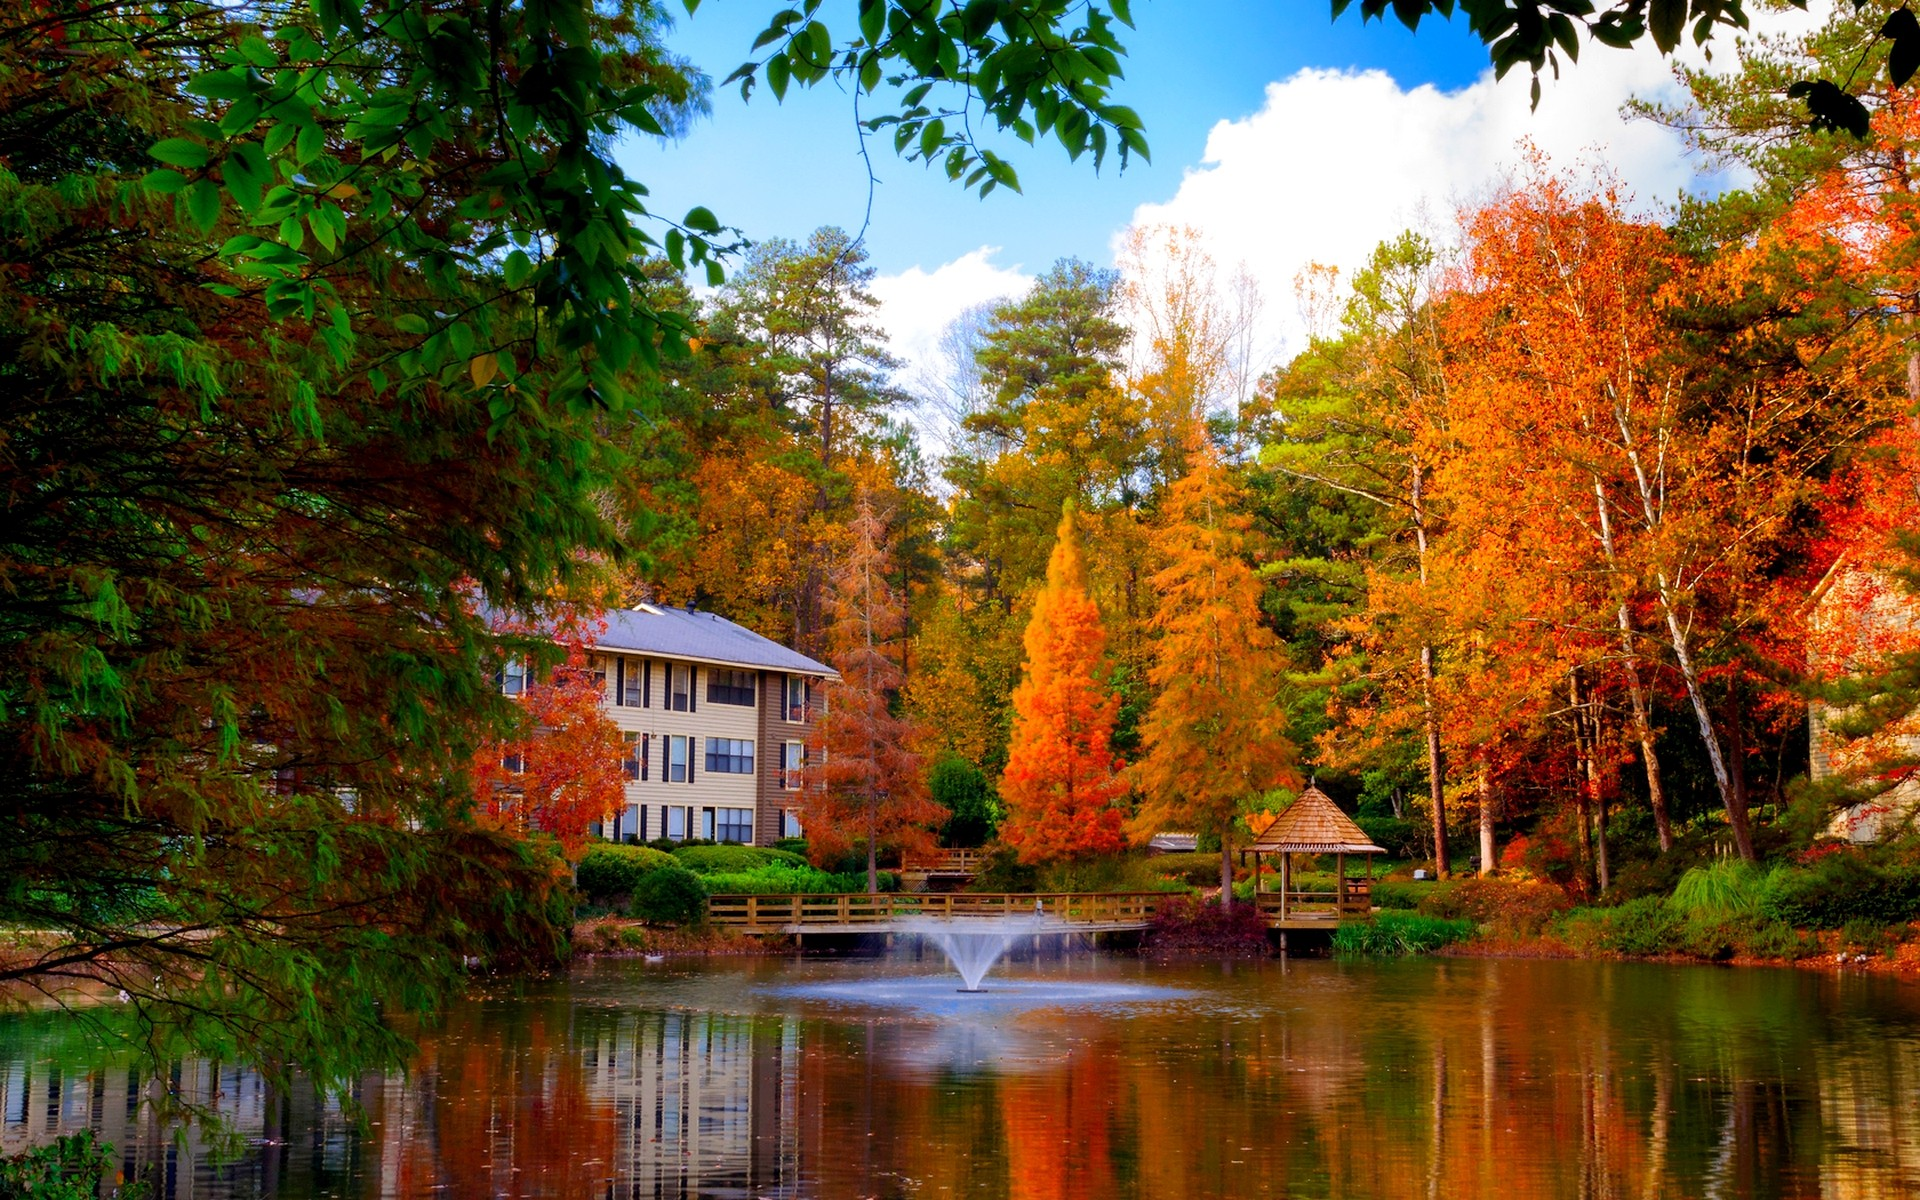 Haus am see wallpaper  House on the Lake in Autumn Full HD Wallpaper and Hintergrund ...